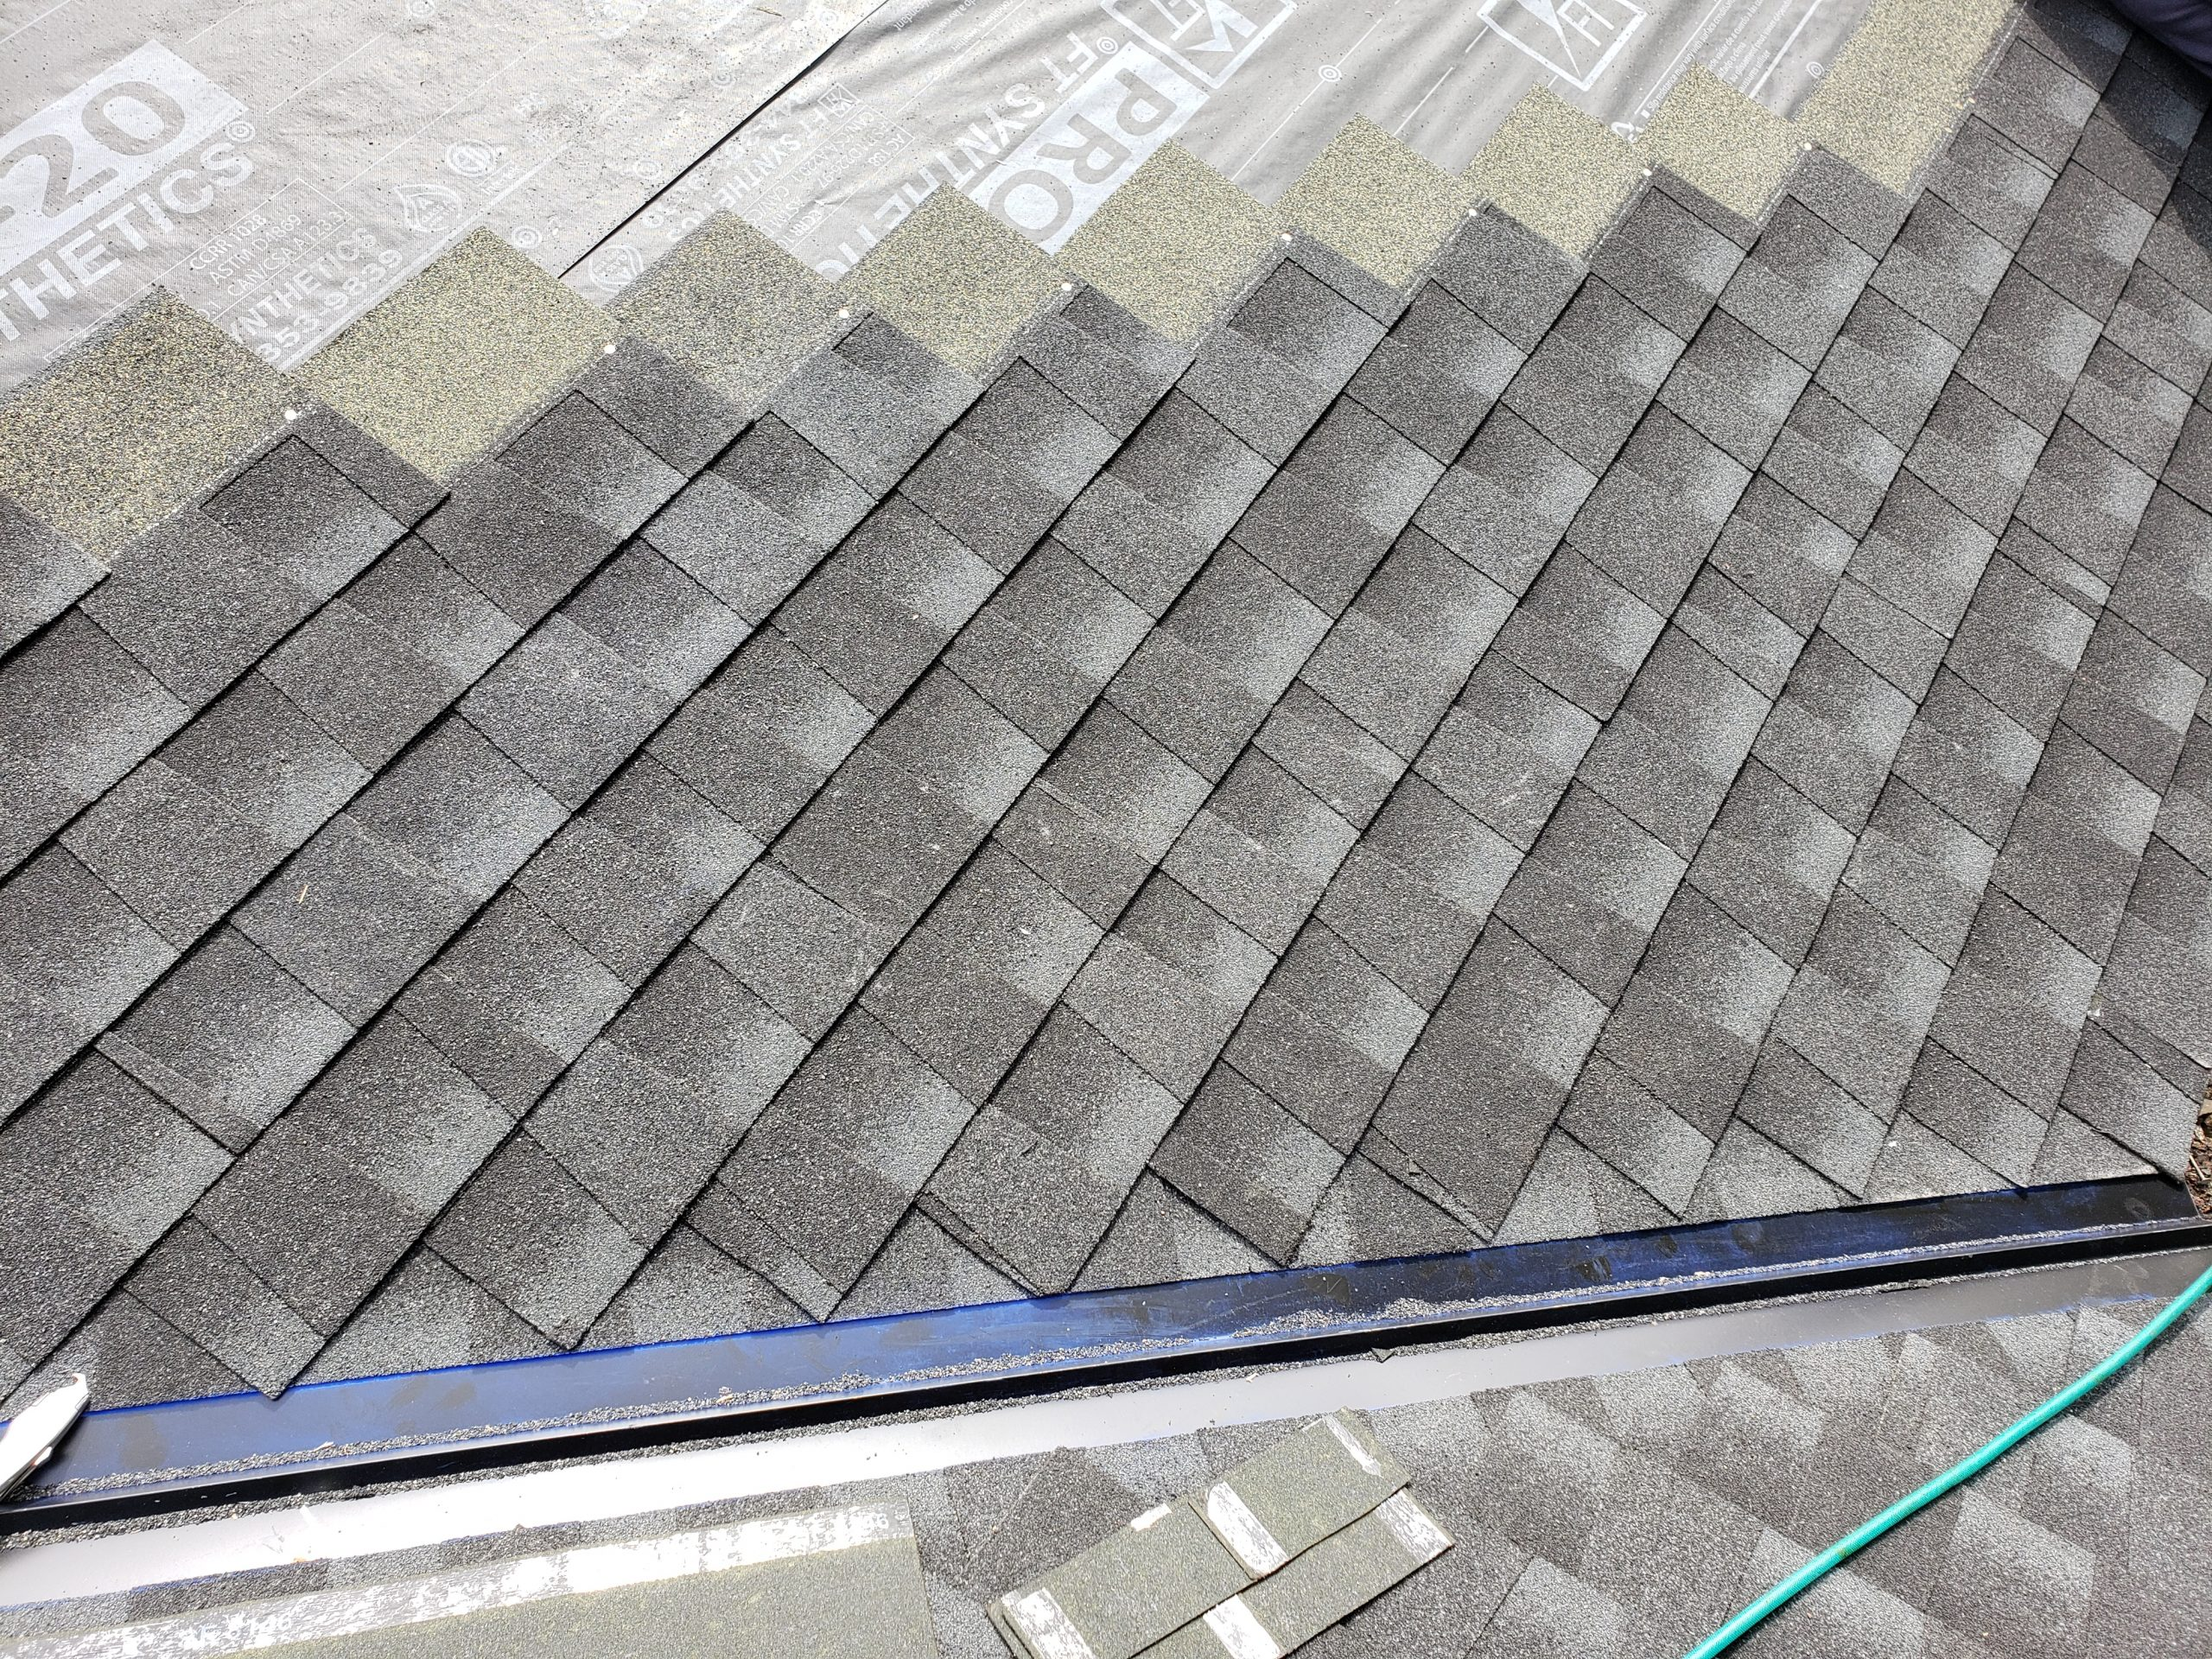 RE-ROOF and roofing